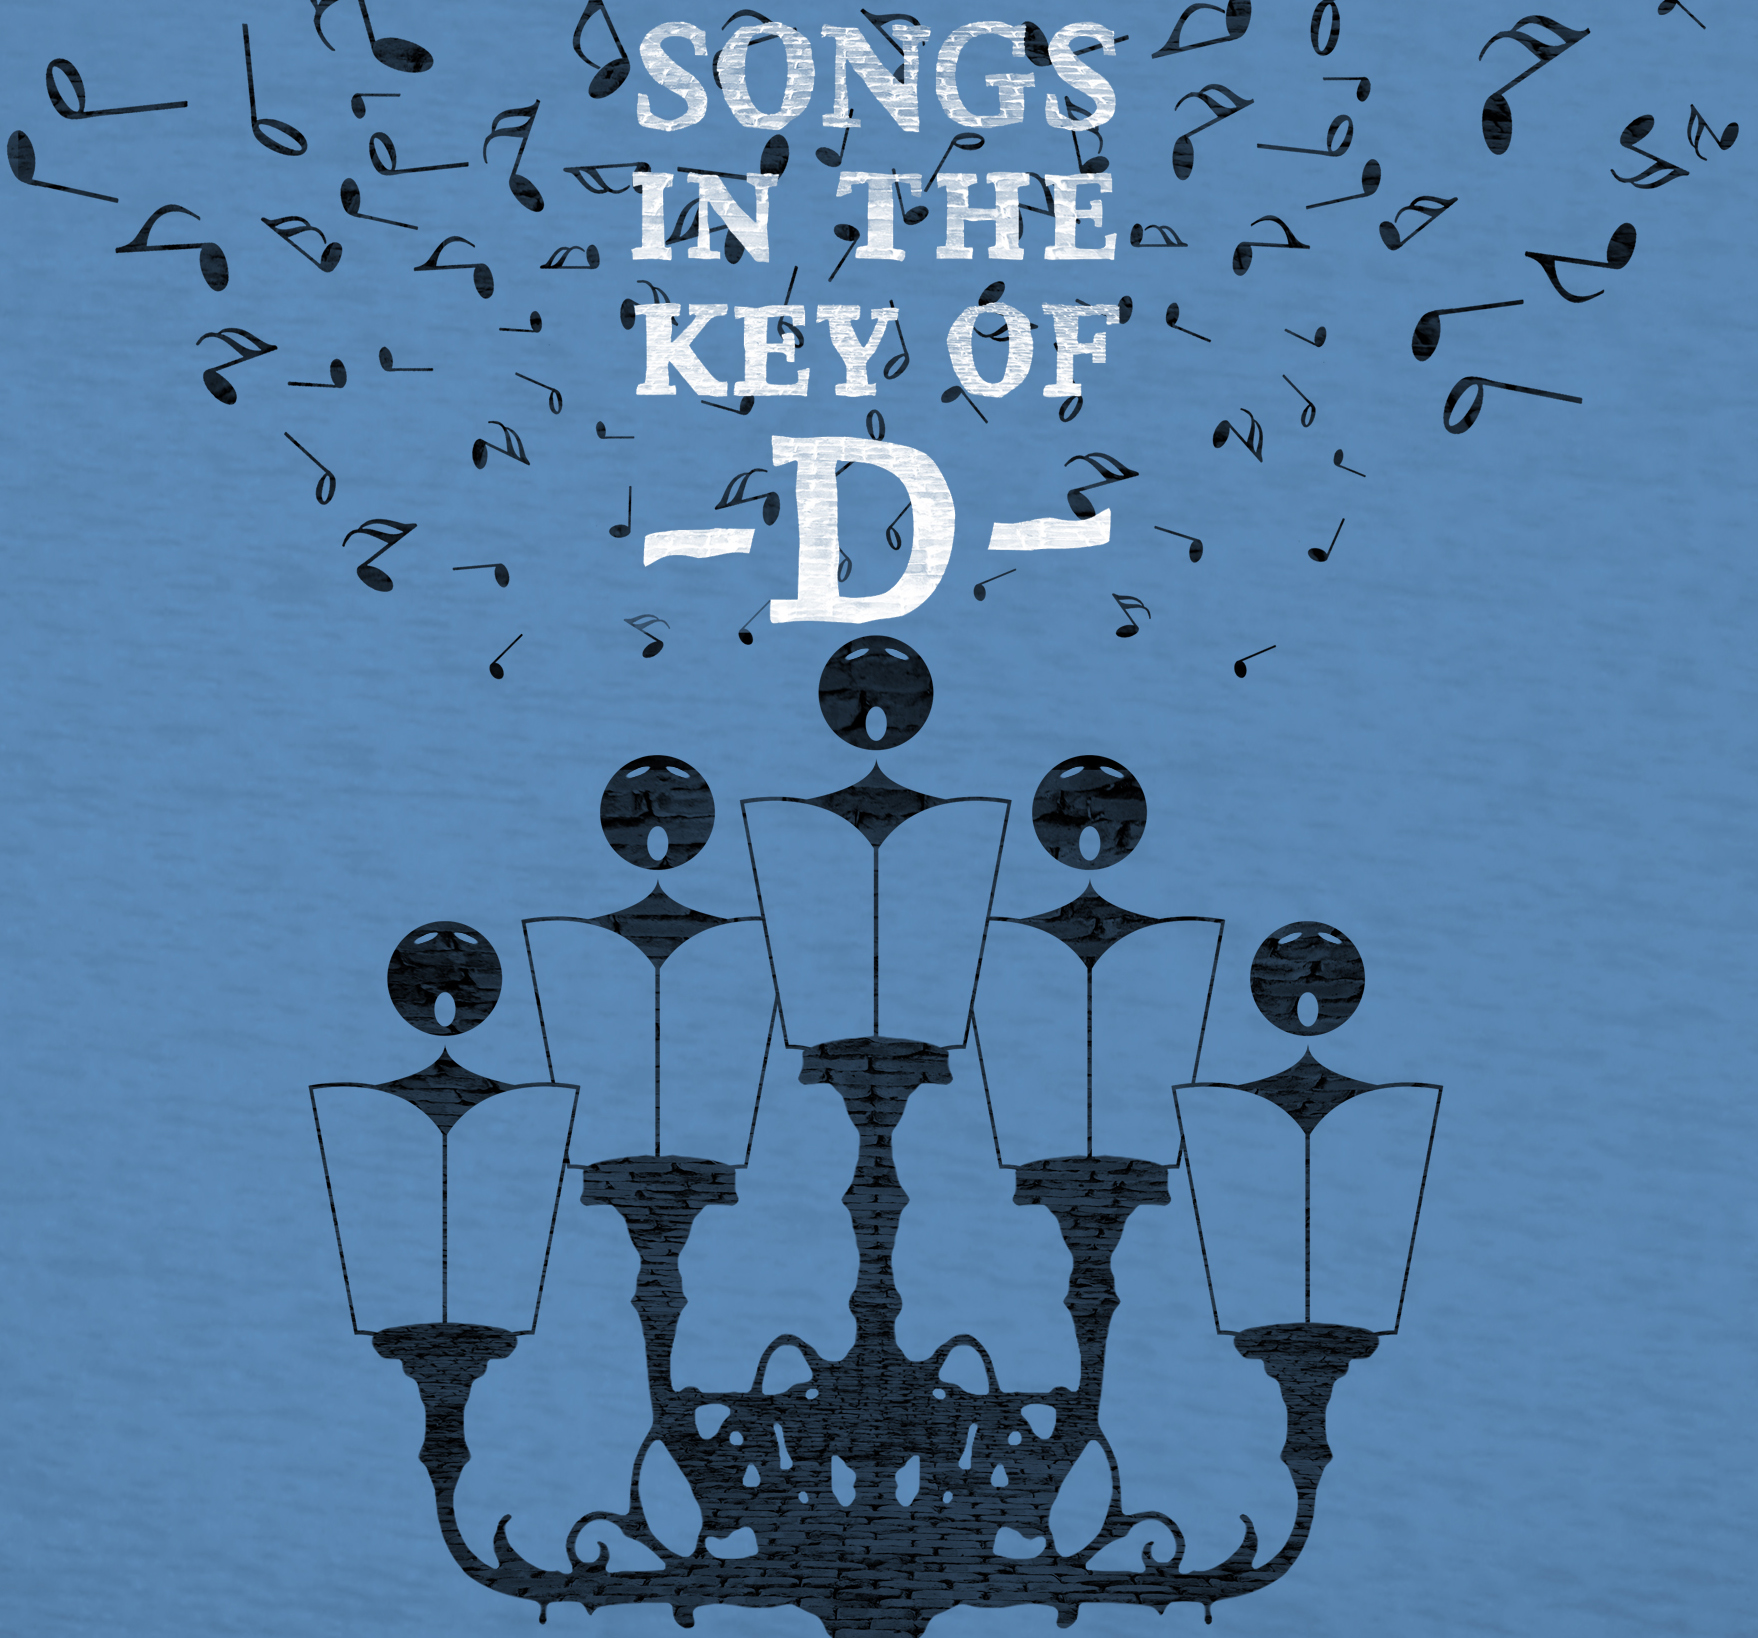 Songs In The Key of